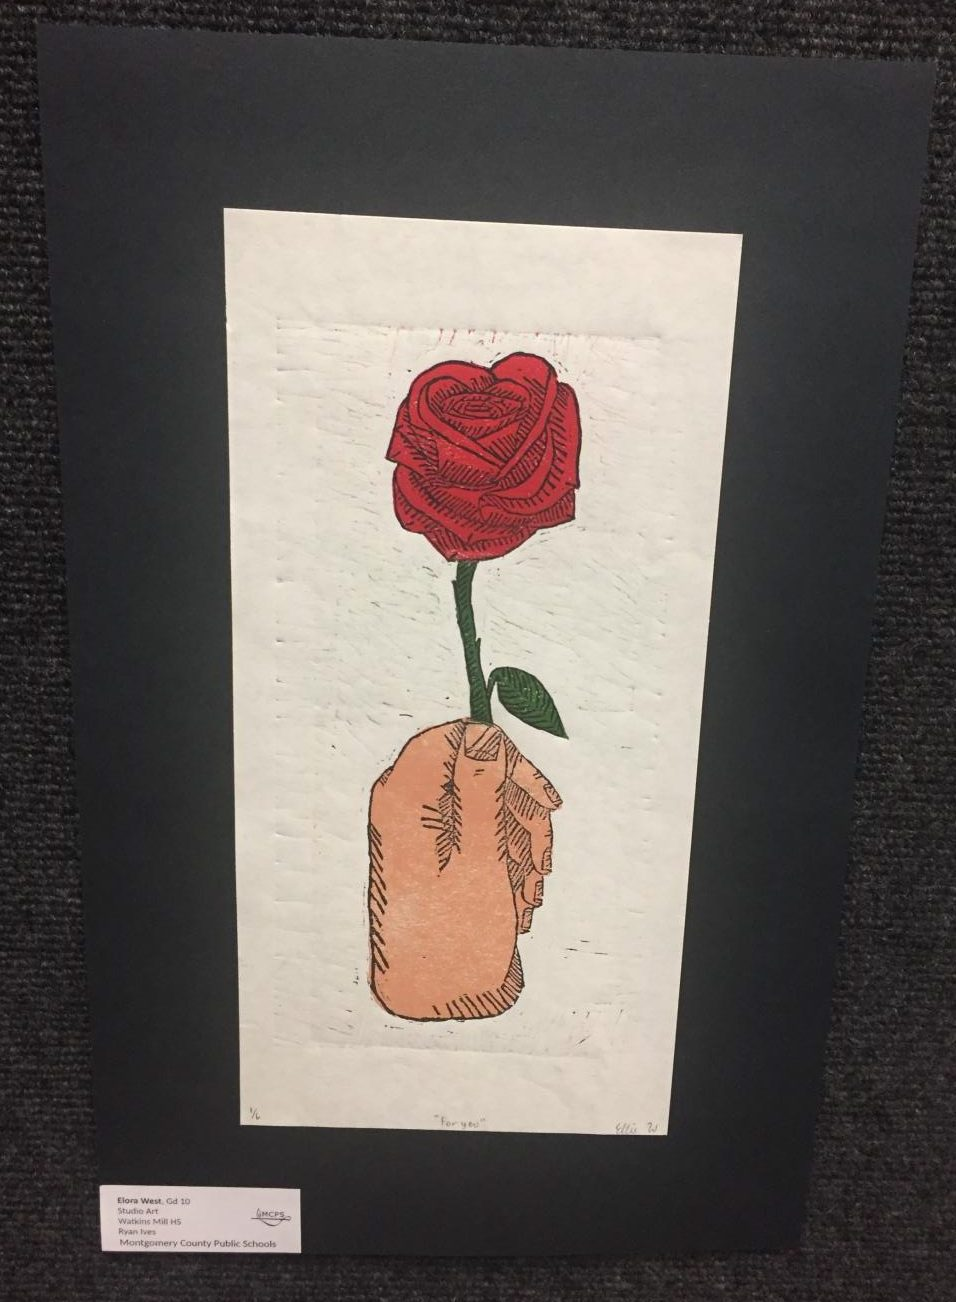 Artwork+by+Sophomore+Elora+West+of+a+hand+and+rose+in+the+Watkins+Mill+High+School+Art+Show+2019